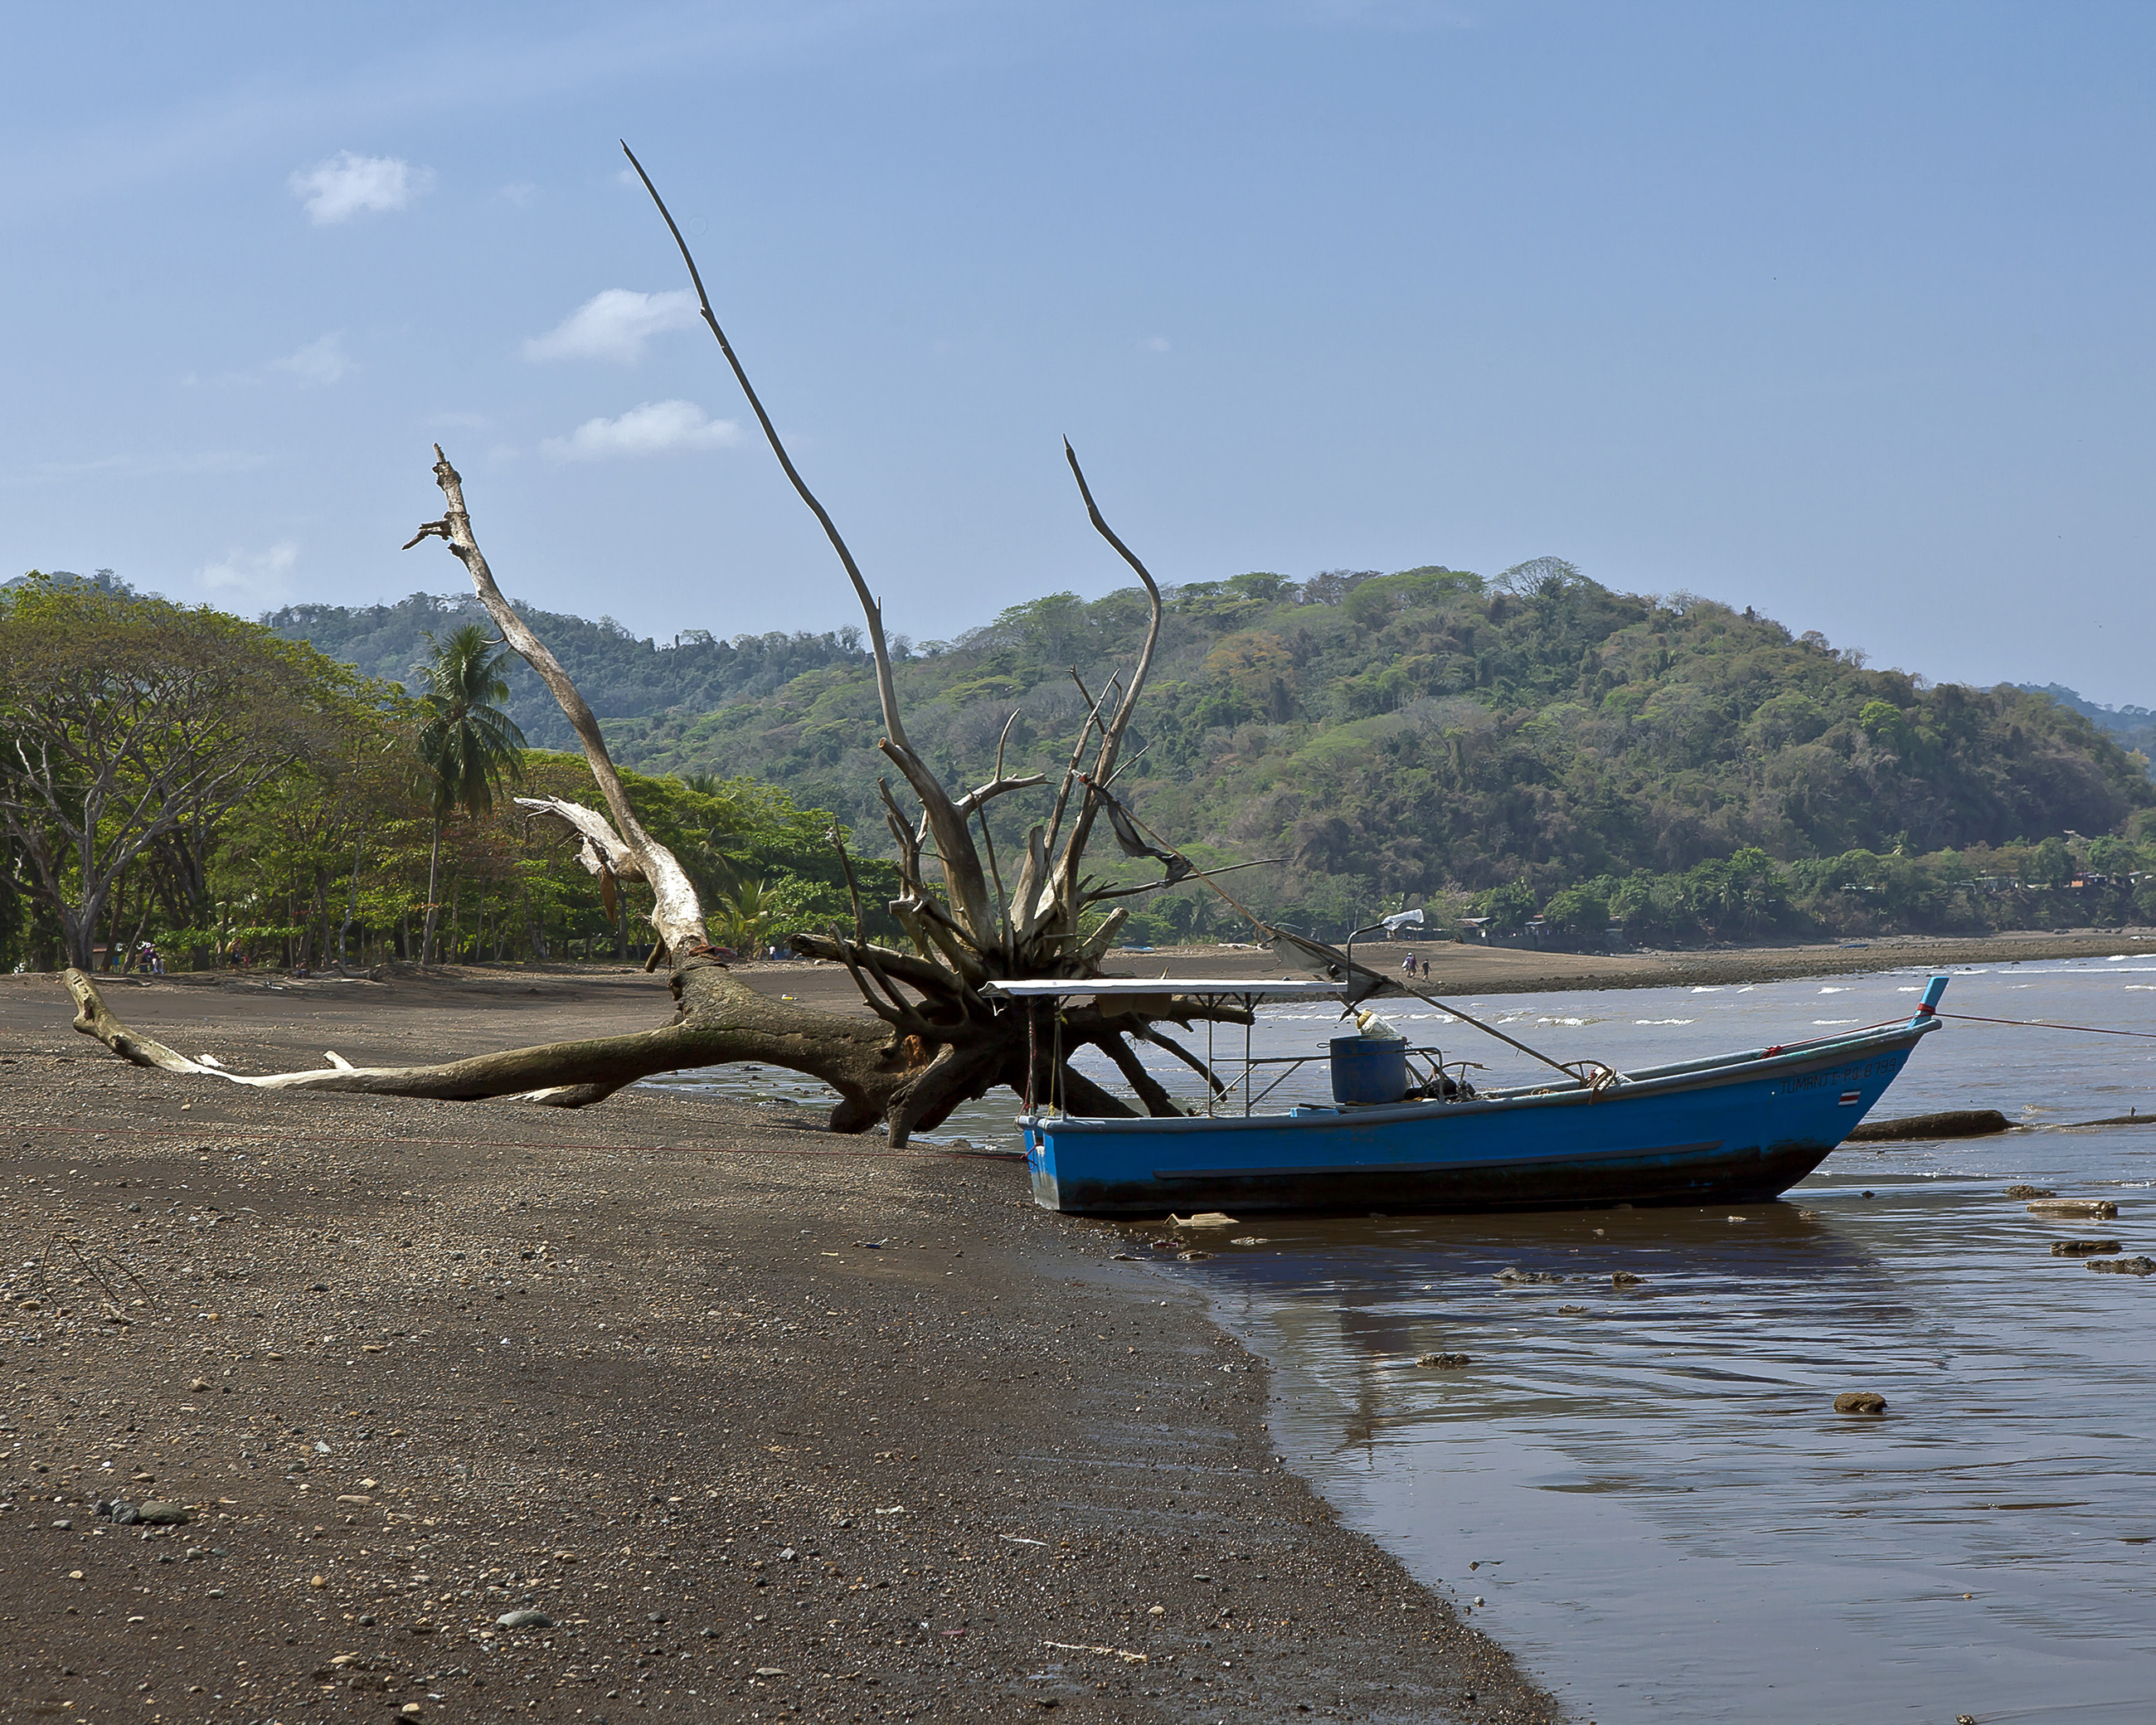 Fishing boat, Beach, Seascape, Peace, Peaceful, HQ Photo